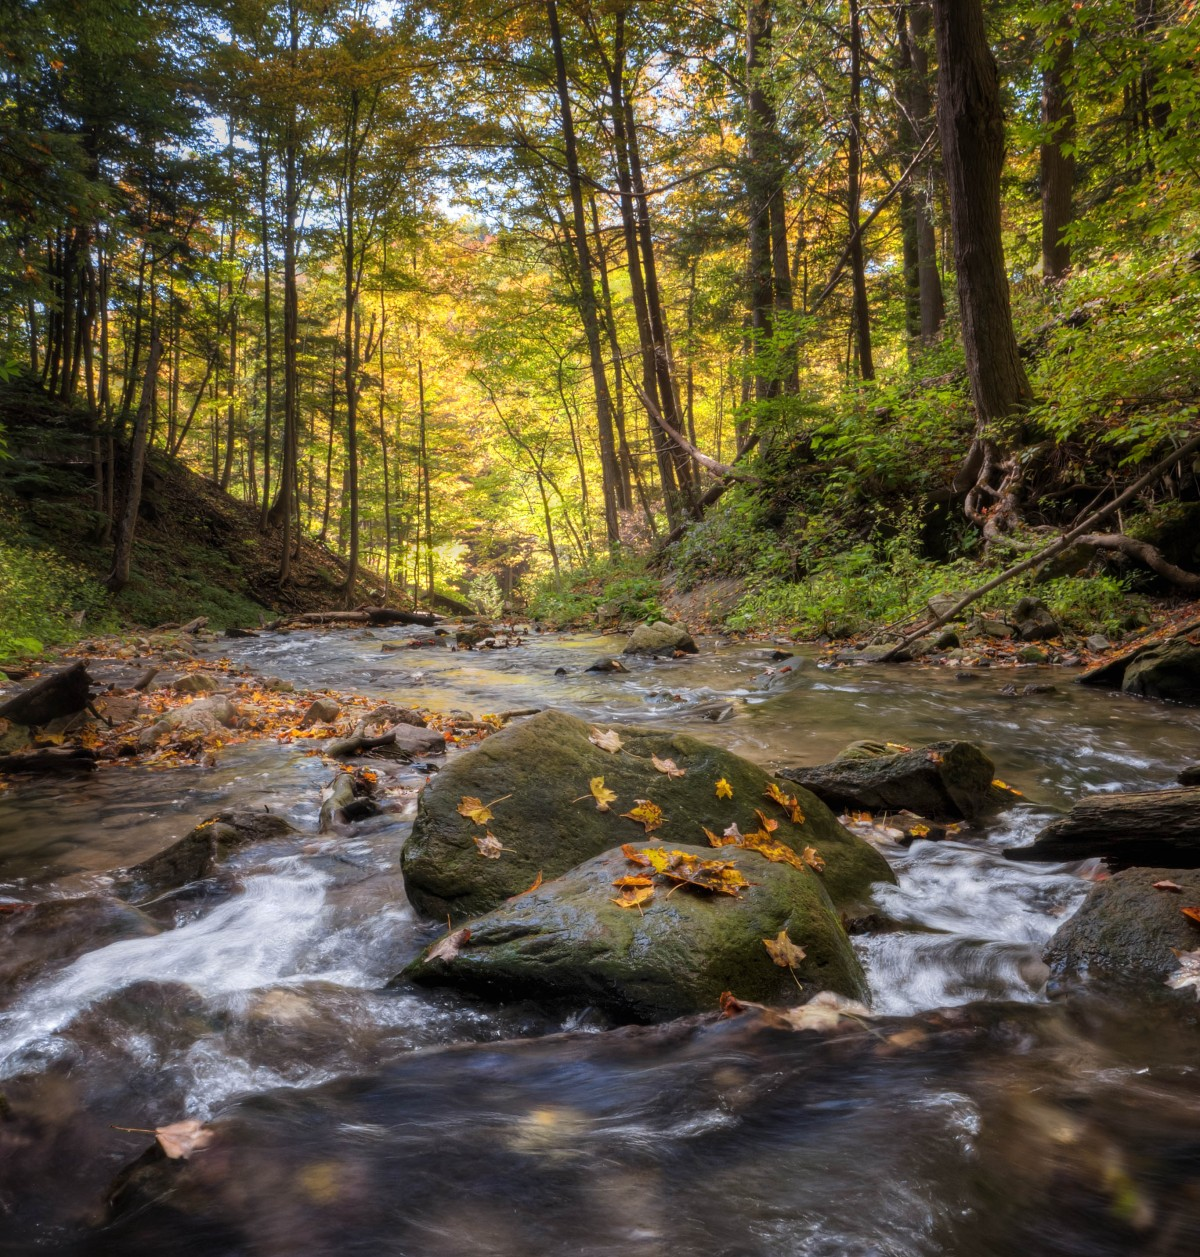 Colorful Fall Scene Wallpaper Free Images Landscape Tree Nature Forest Rock Creek